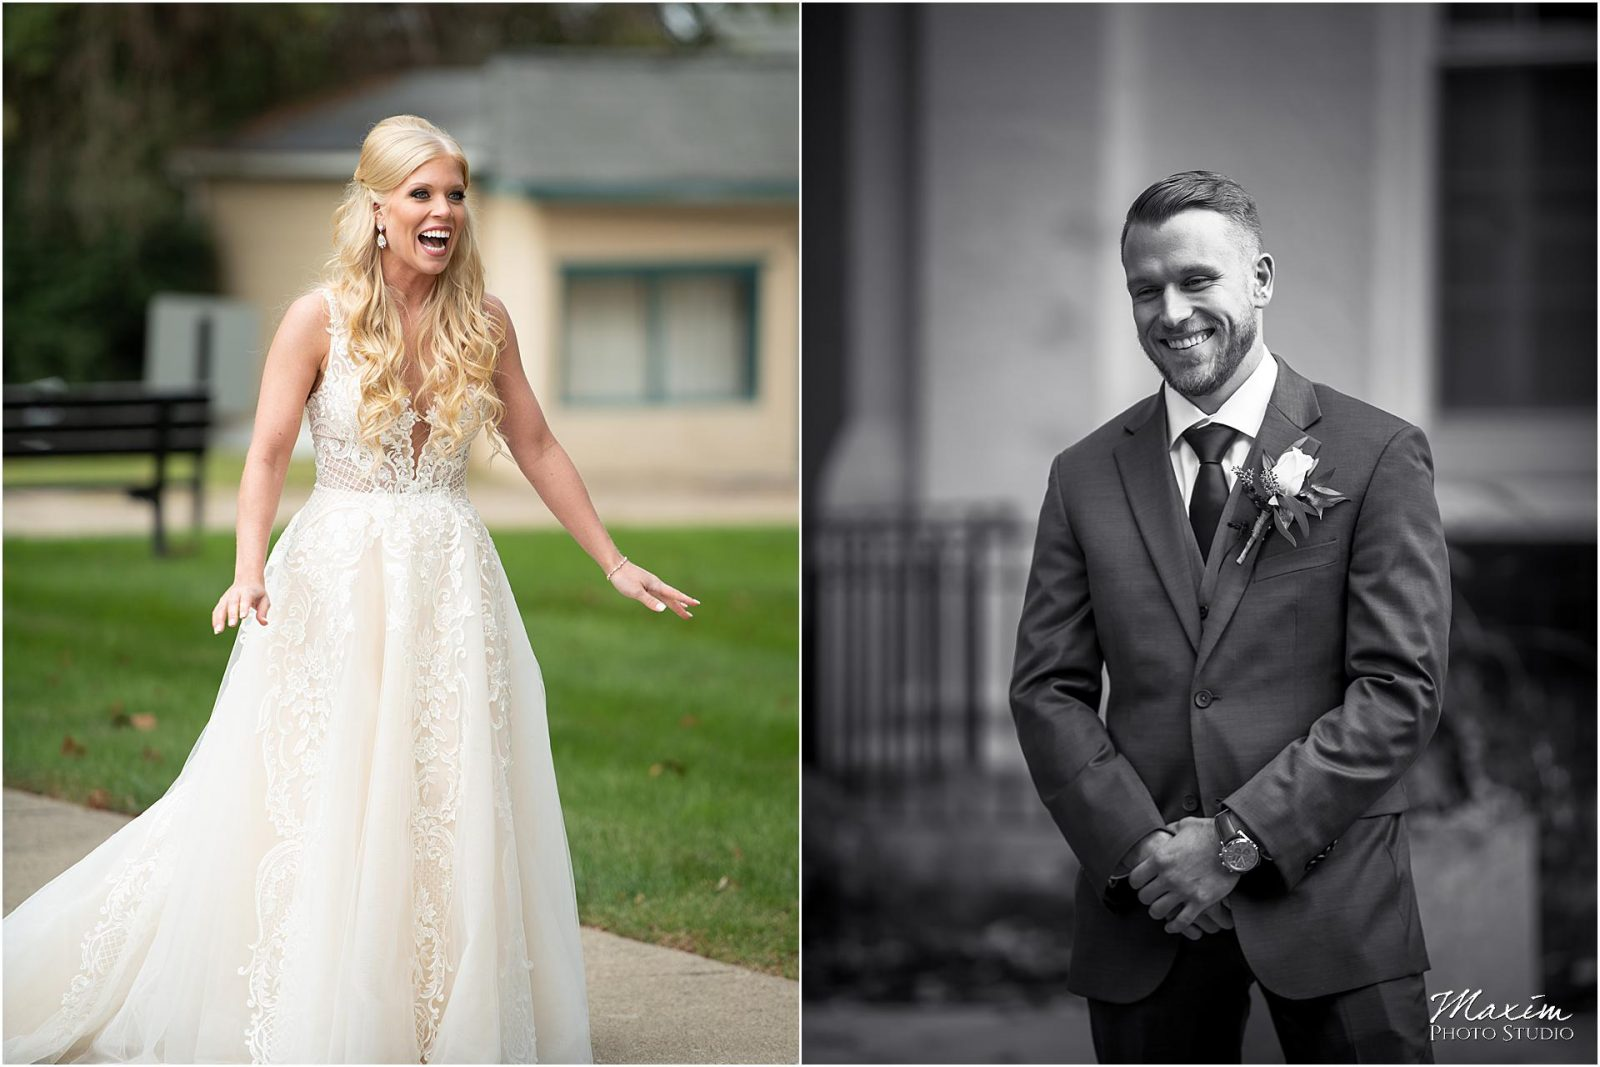 Kentucky Wedding Photographers, Groom Bride First Look pictures